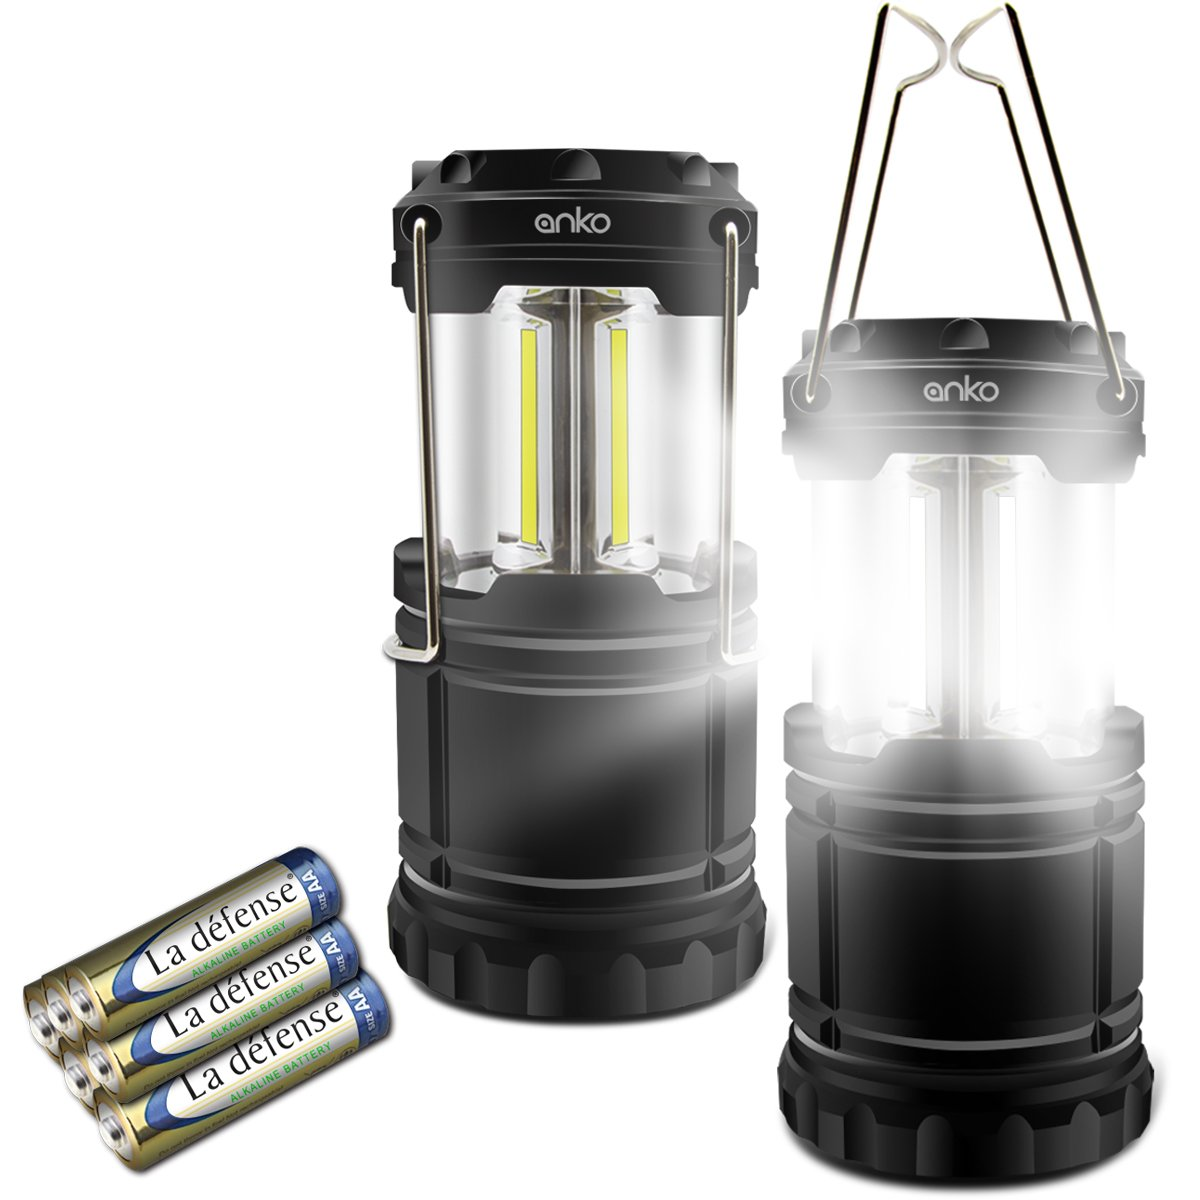 LED Camping Lantern, ANKO 350 Lumen COB Camping Equipment Gear Lights for Hiking, Emergencies, Hurricanes, Outages, Storms, Camping. (BLACK-2 PACK)